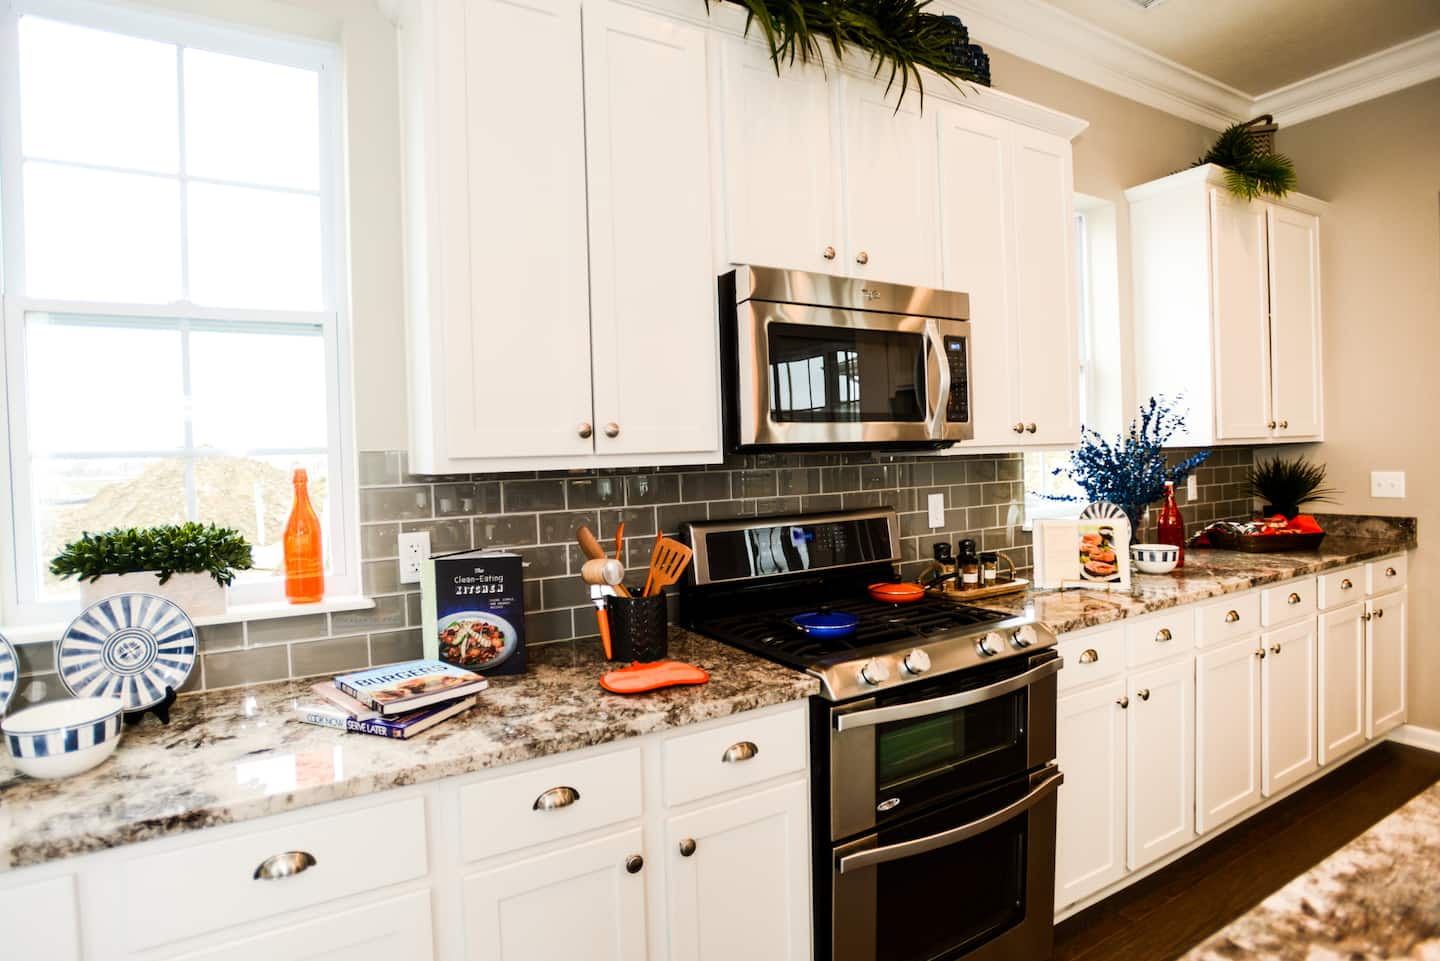 6 Ways to Keep Kitchen Counters Clutter Free